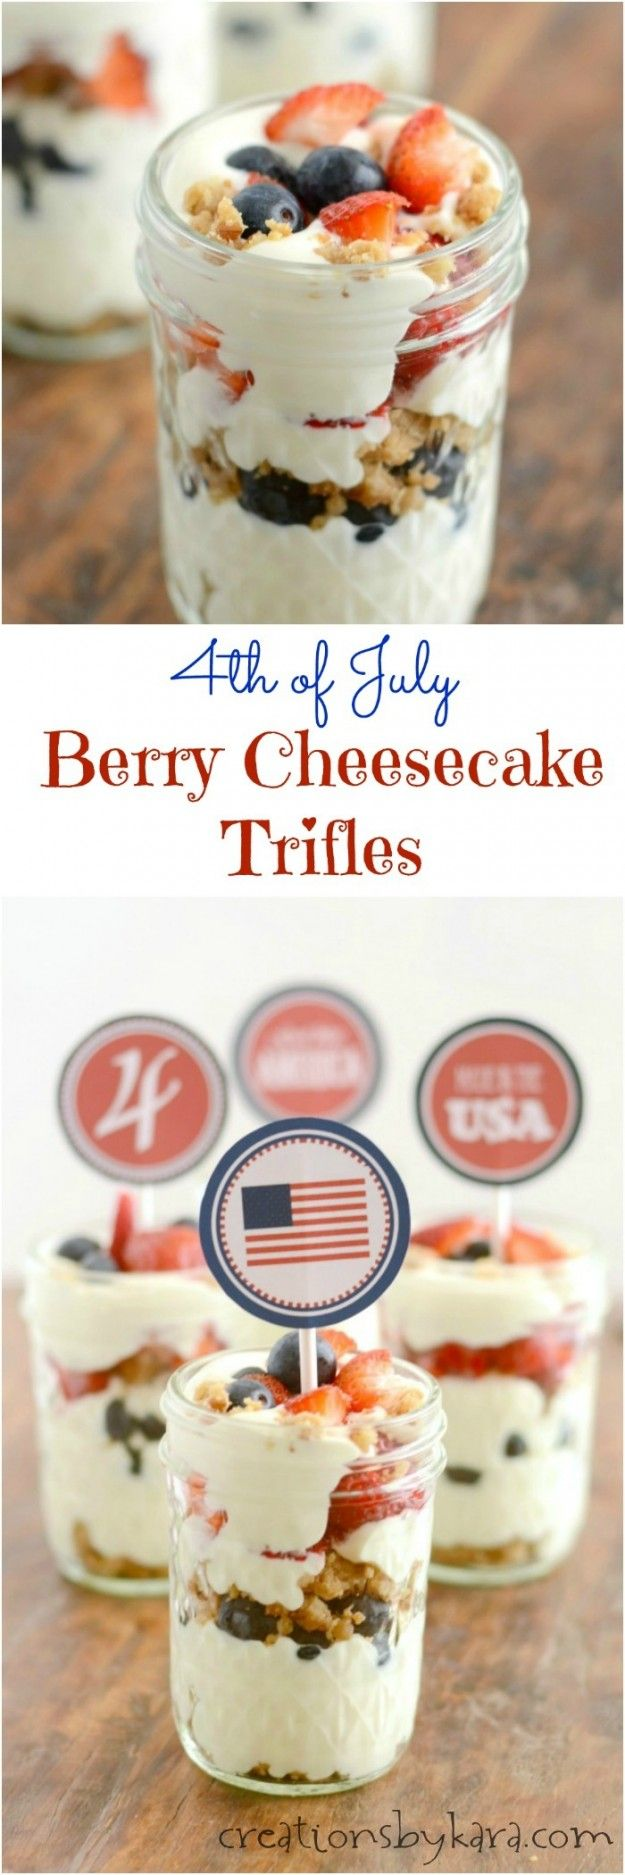 17 Best images about July 4th on Pinterest | Printable ...